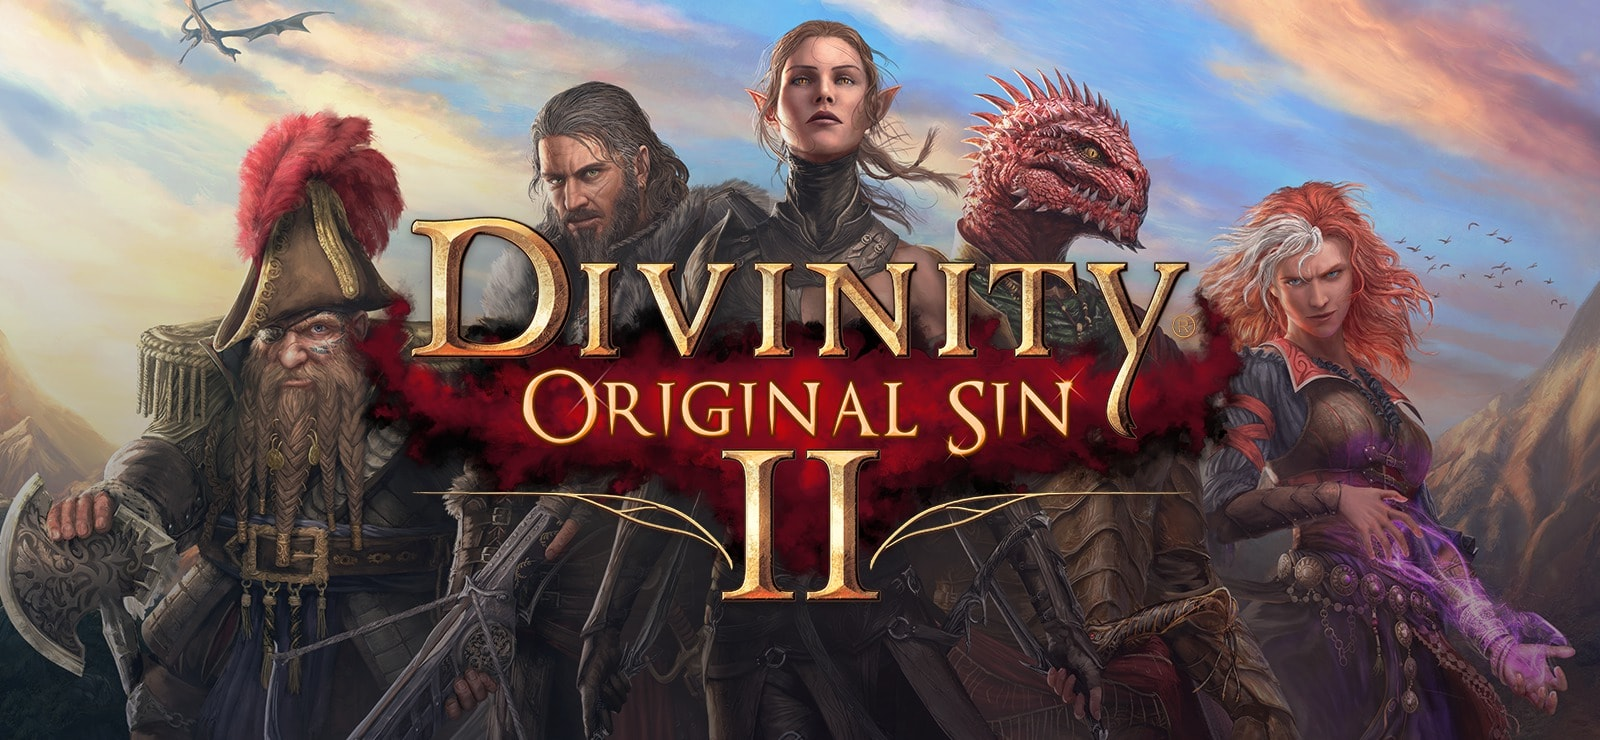 Divinity: Original Sin 2 Definite Edition - Early Impressions: A welcome addition the the PS4 library